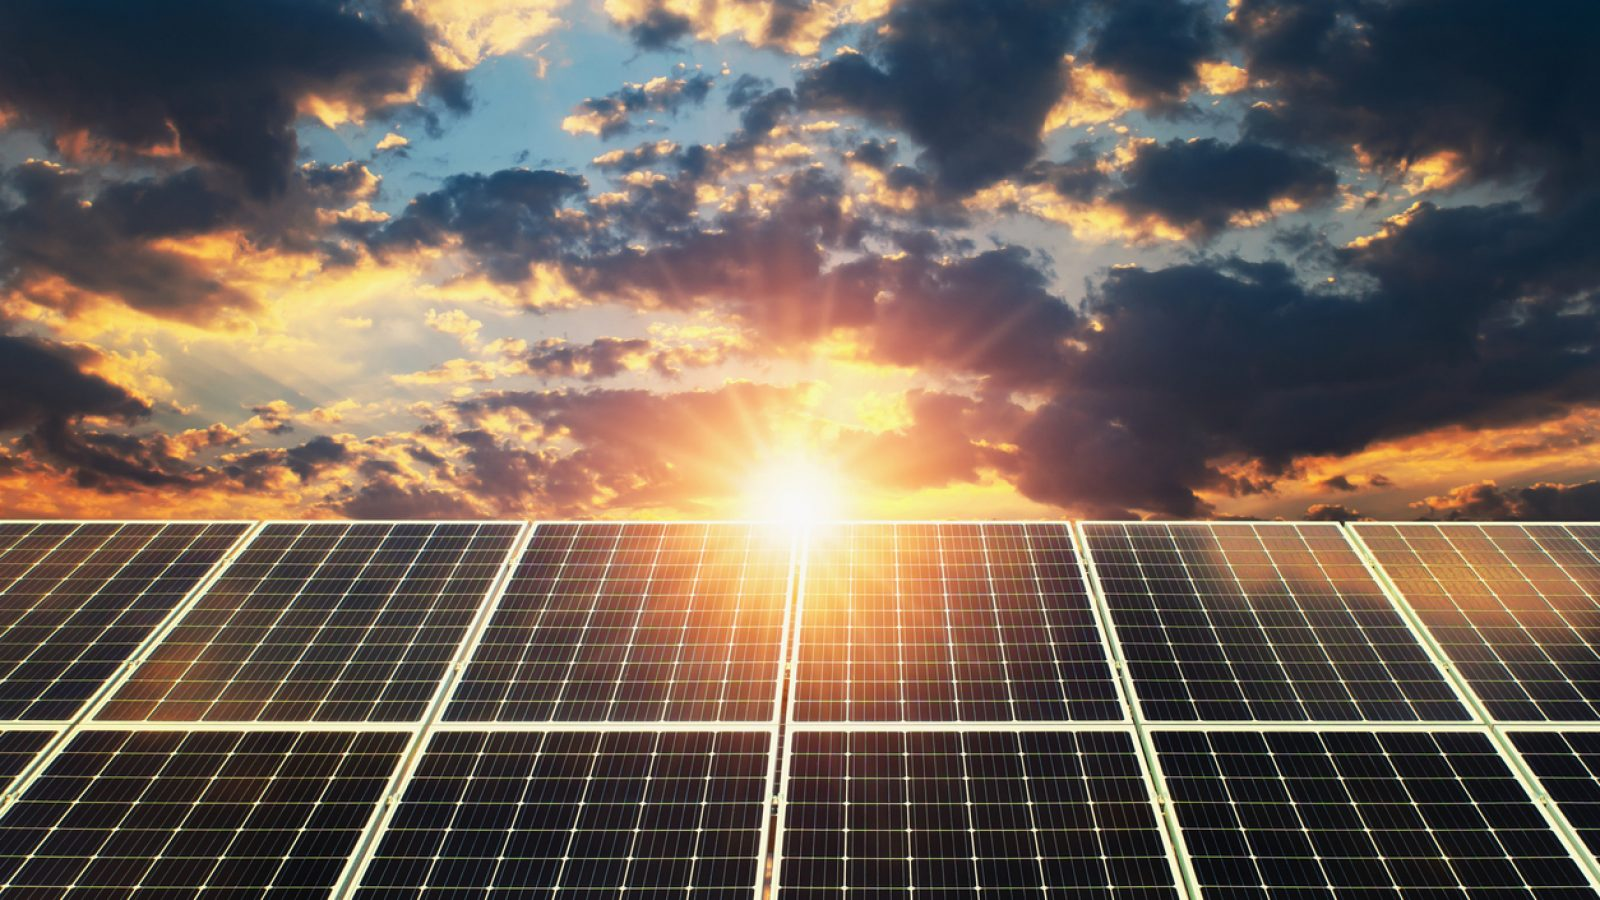 Solar panel sunset. concept clean energy, electric alternative, power in nature